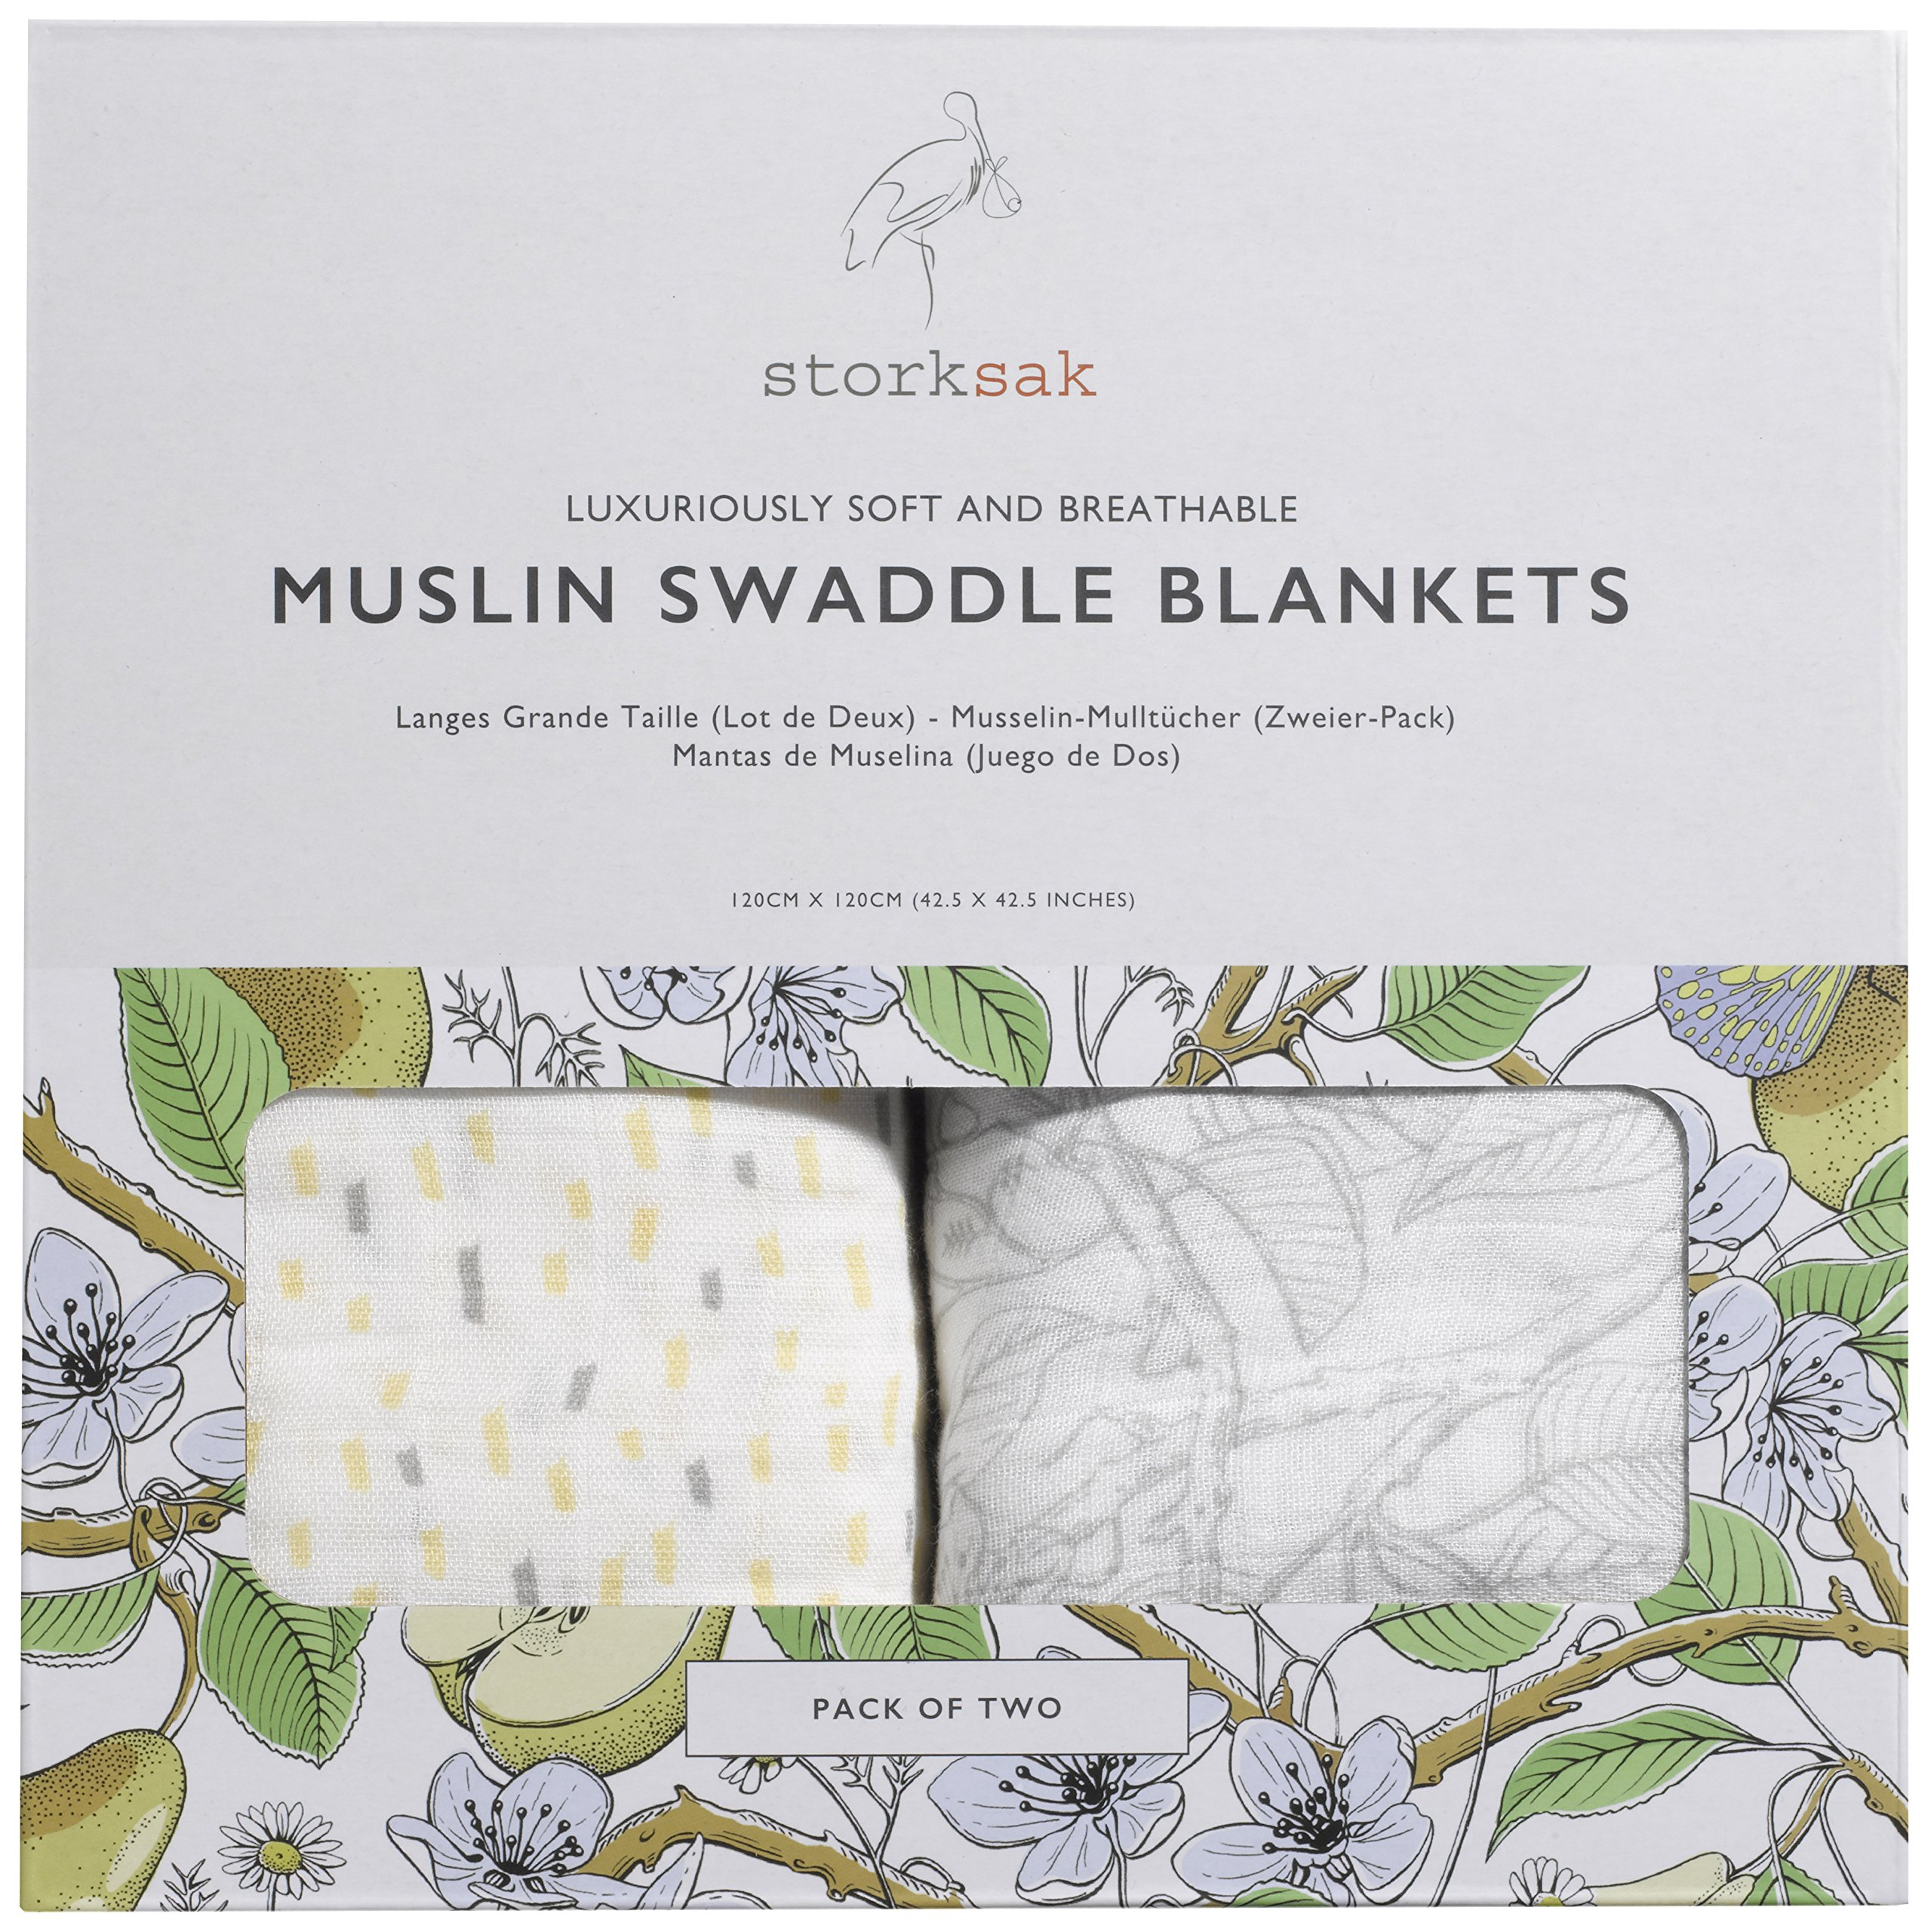 Storksak Muslin Swaddle Blankets Two-Pack, Mixed Print